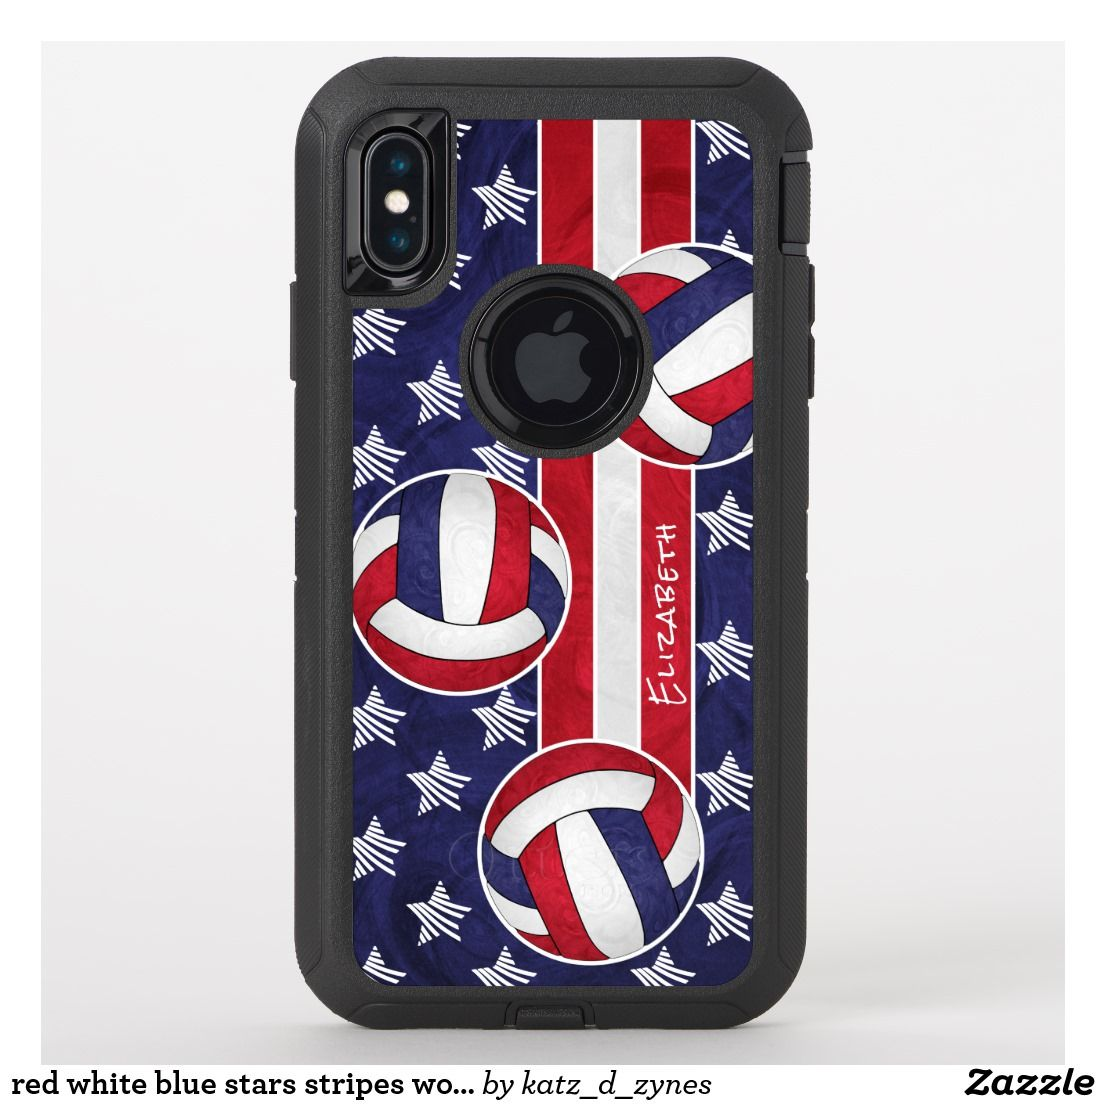 Red White Blue Stars Stripes Women S Volleyball Otterbox Iphone Case Zazzle Com Red And White Volleyball Player Gifts Red White Blue